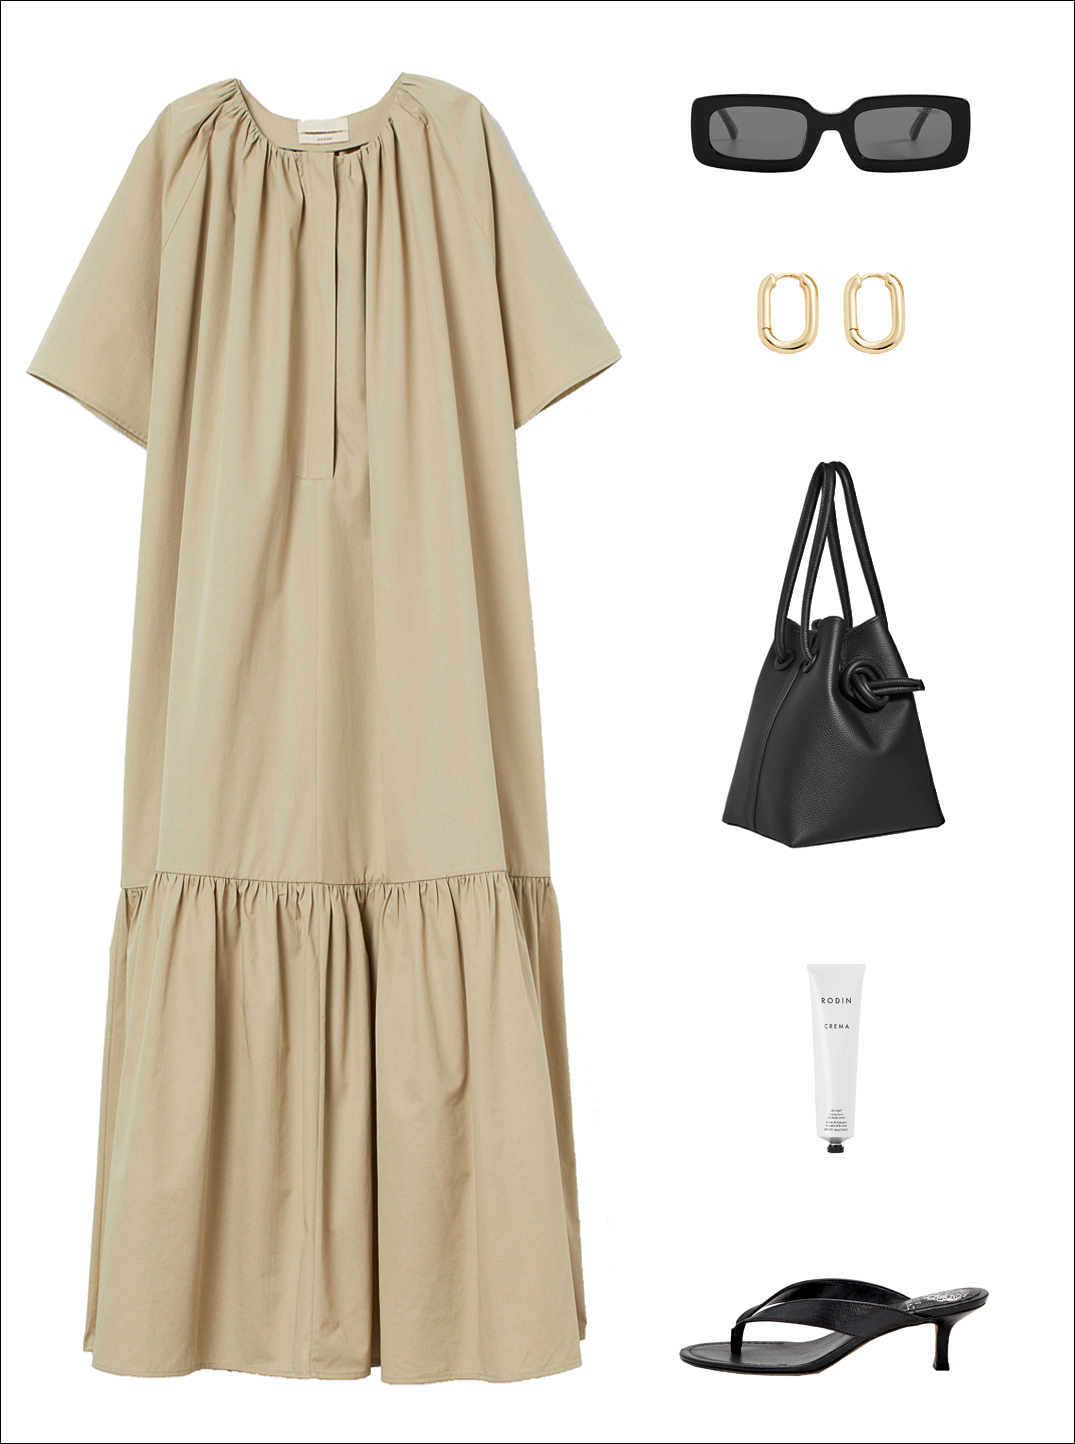 Minimalist Spring Outfit Idea: Oversized Tan Dress, Rectangle Sunglasses, Oval Hoop Earrings, Black Bucket Bag, Rodin Cream, and Flip Flop Kitten Heel Sandals